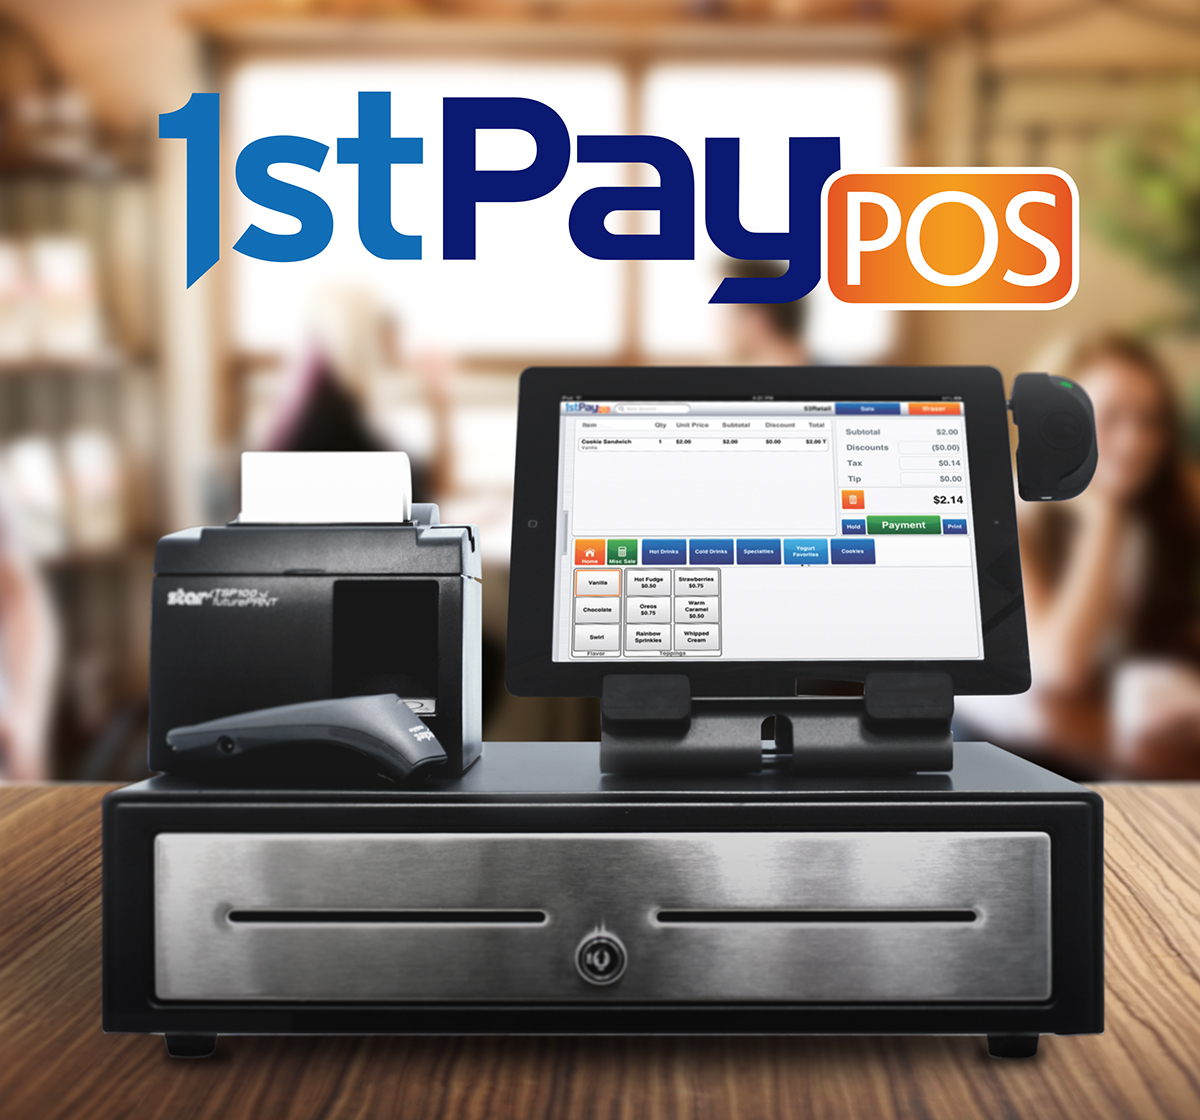 First American Payment Systems Introduces 1stpaypos